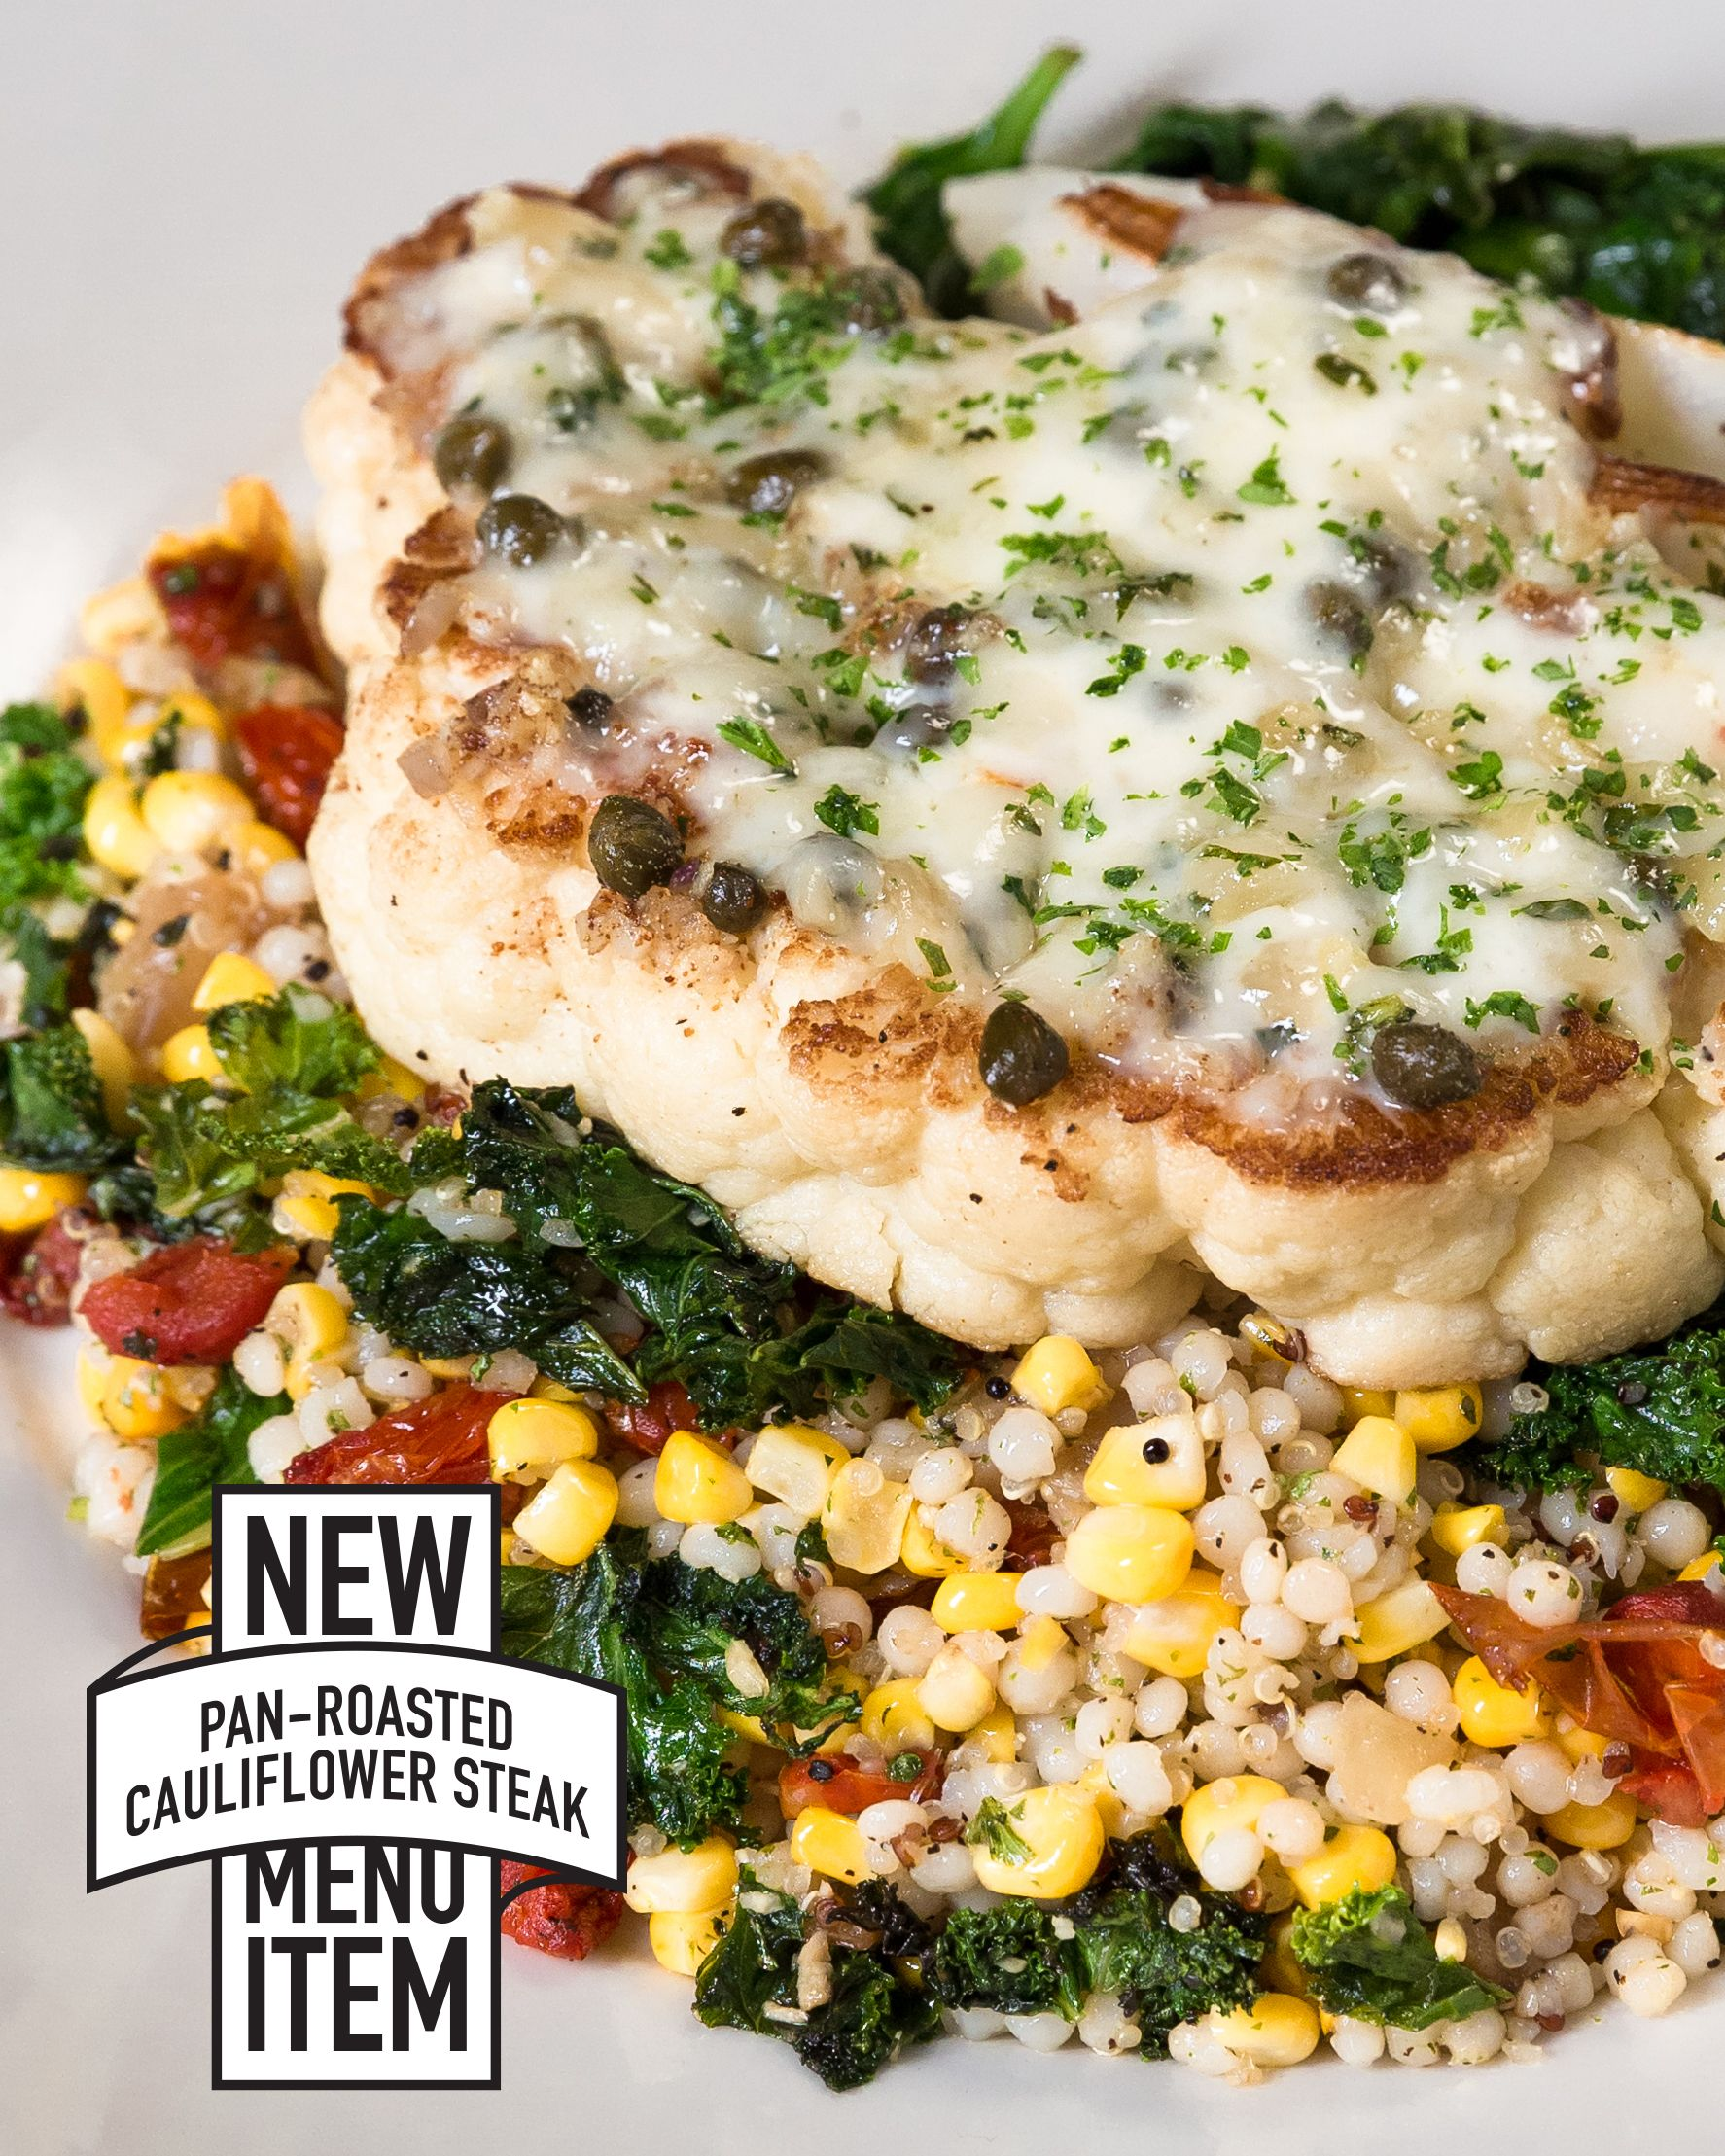 Cauliflower Steak With Brown Butter Herbs Capers And Parmesan Served With Spinach And Couscous Cauliflower Steaks Gourmet Food Plating Vegetarian Recipes